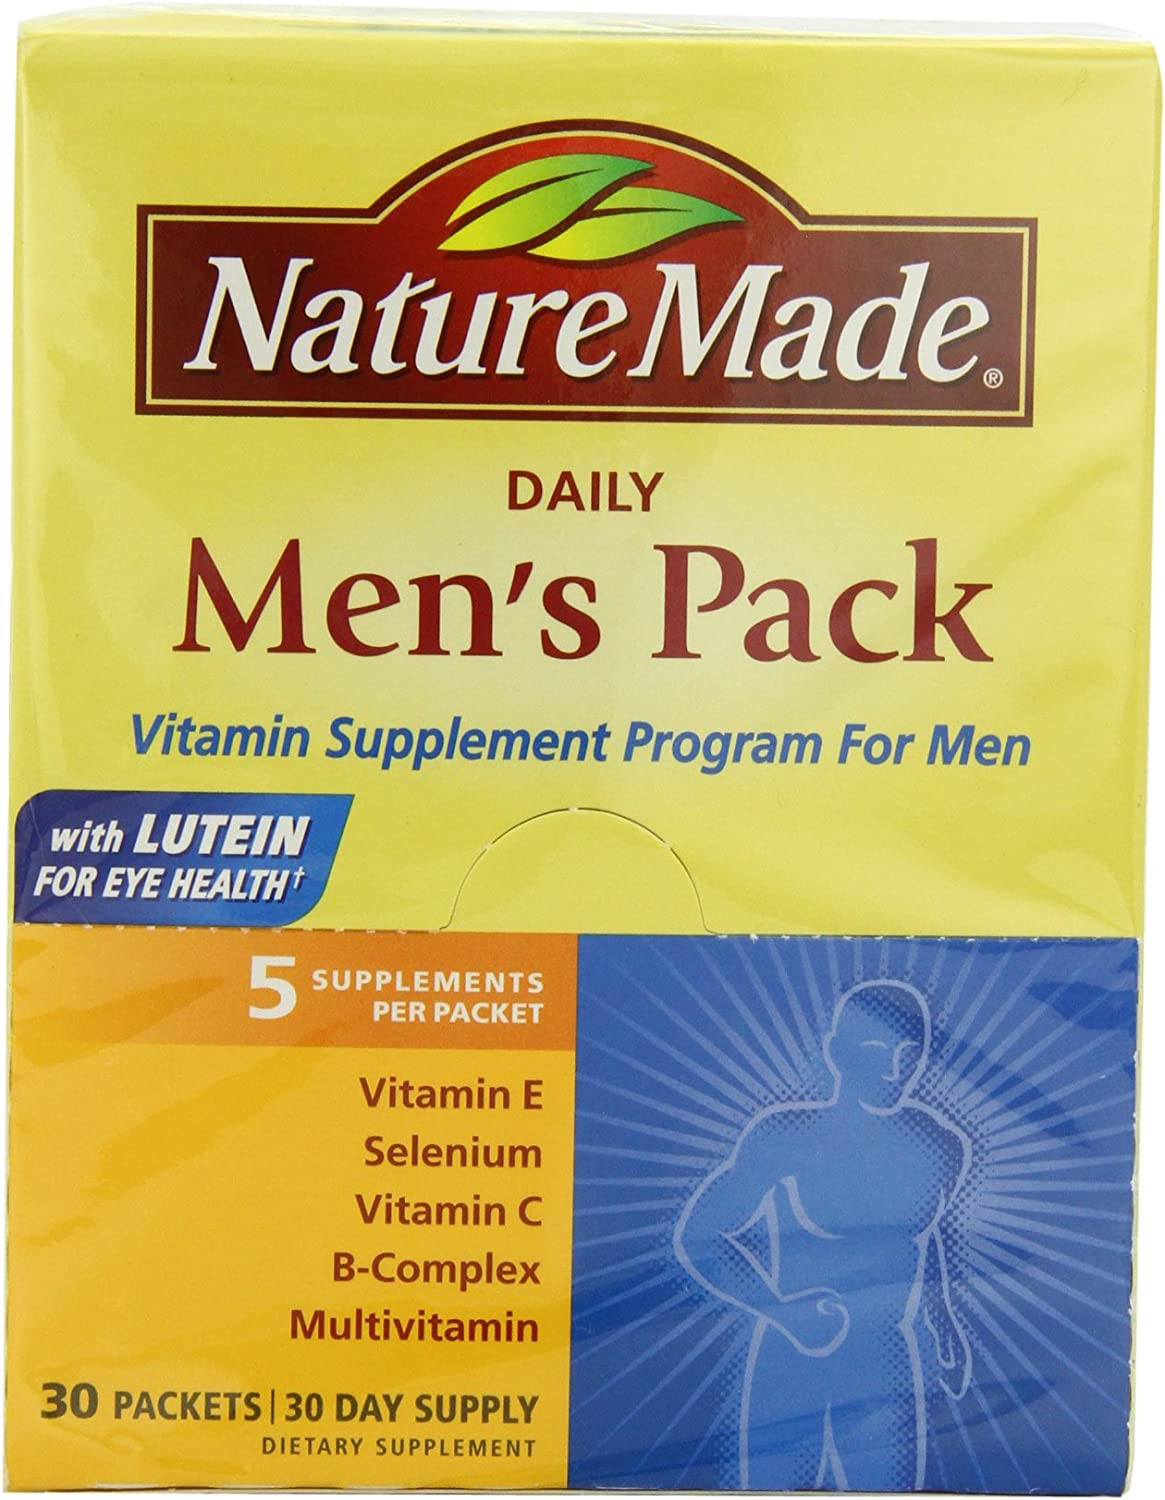 Nature Made Daily Men s Pack Vitamin Supplement Program 30 Each